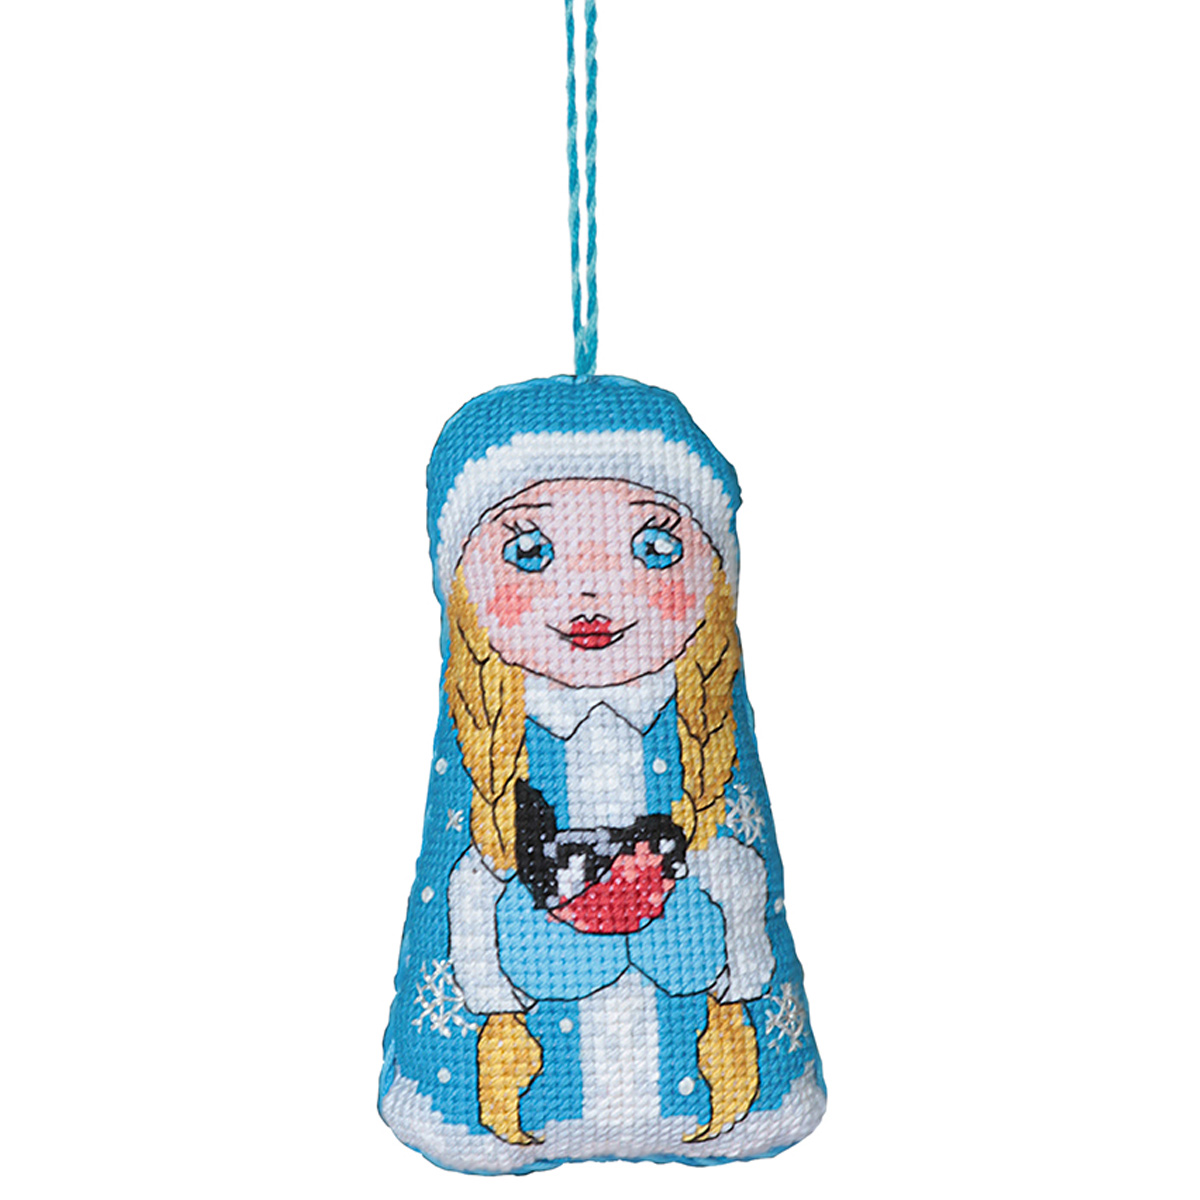 Embroidery kits PANNA IG-1430 Toy. The Snow Maiden